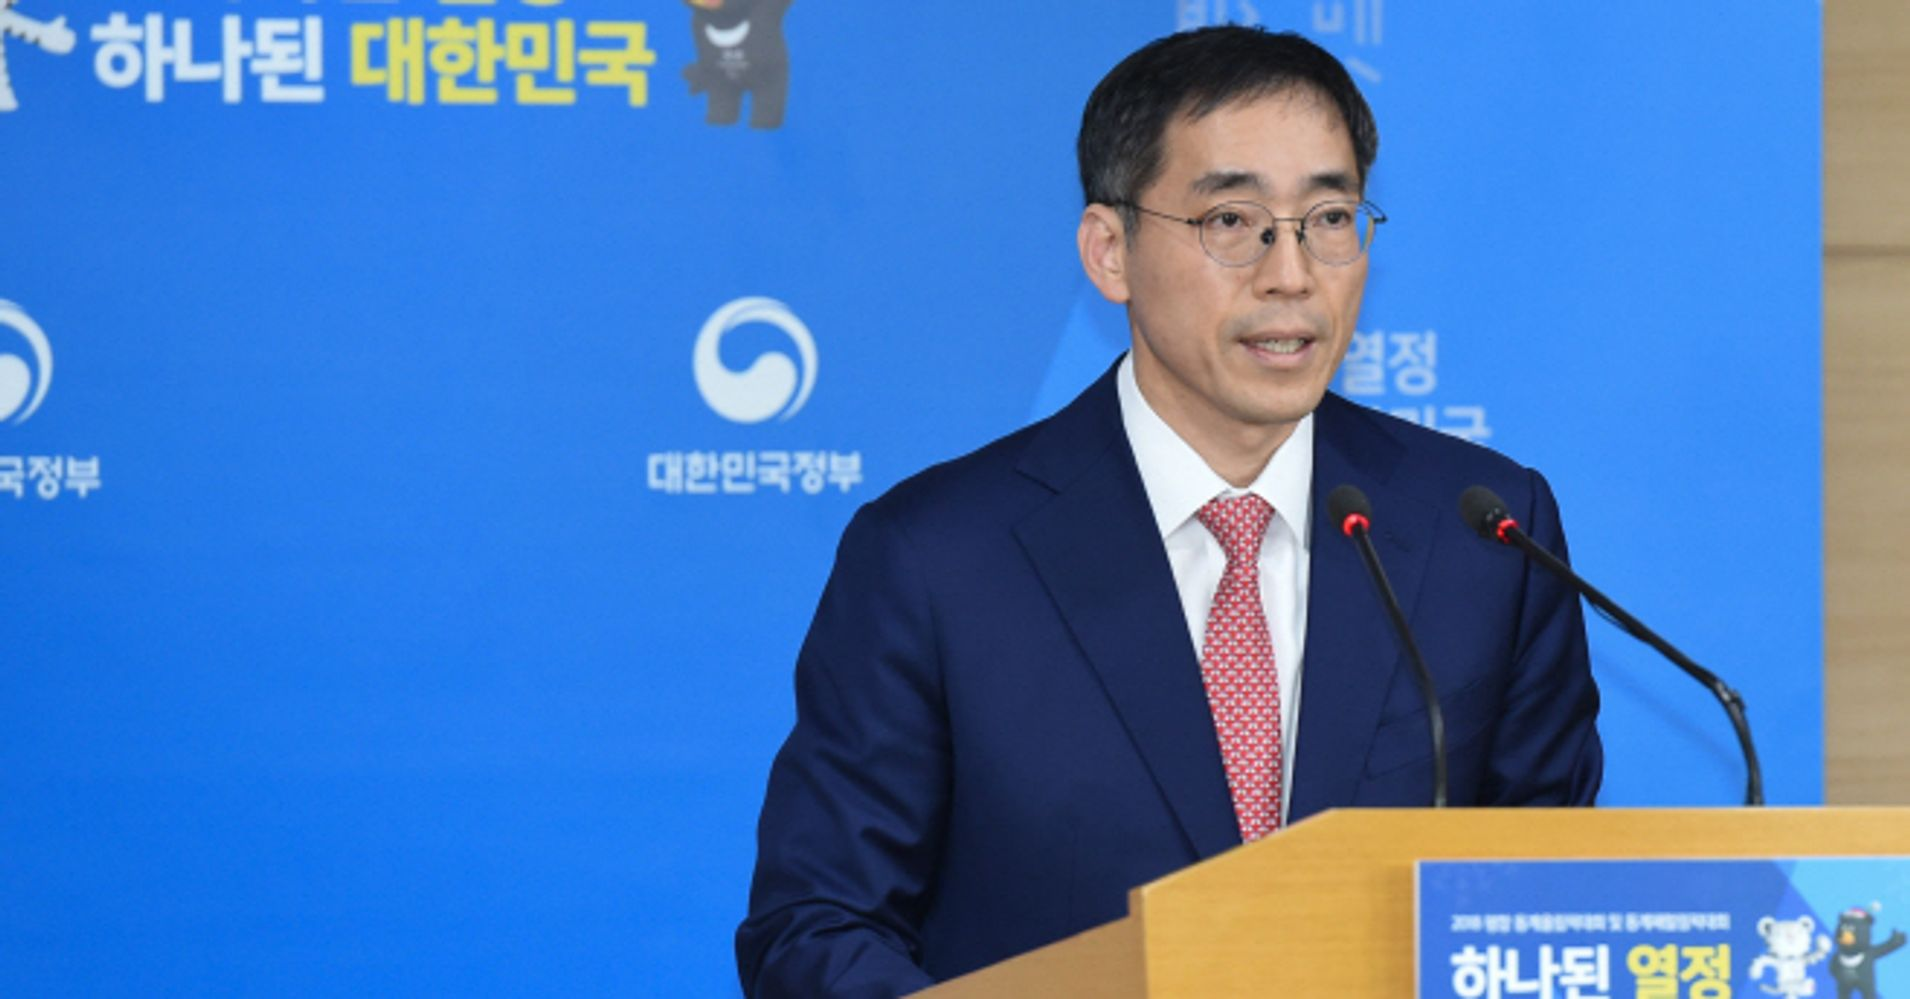 https://www.huffingtonpost.com/entry/s-korea-to-curb-cryptocurrency-speculation-but-to_us_5a5c9e96e4b01ccdd48b5e3c